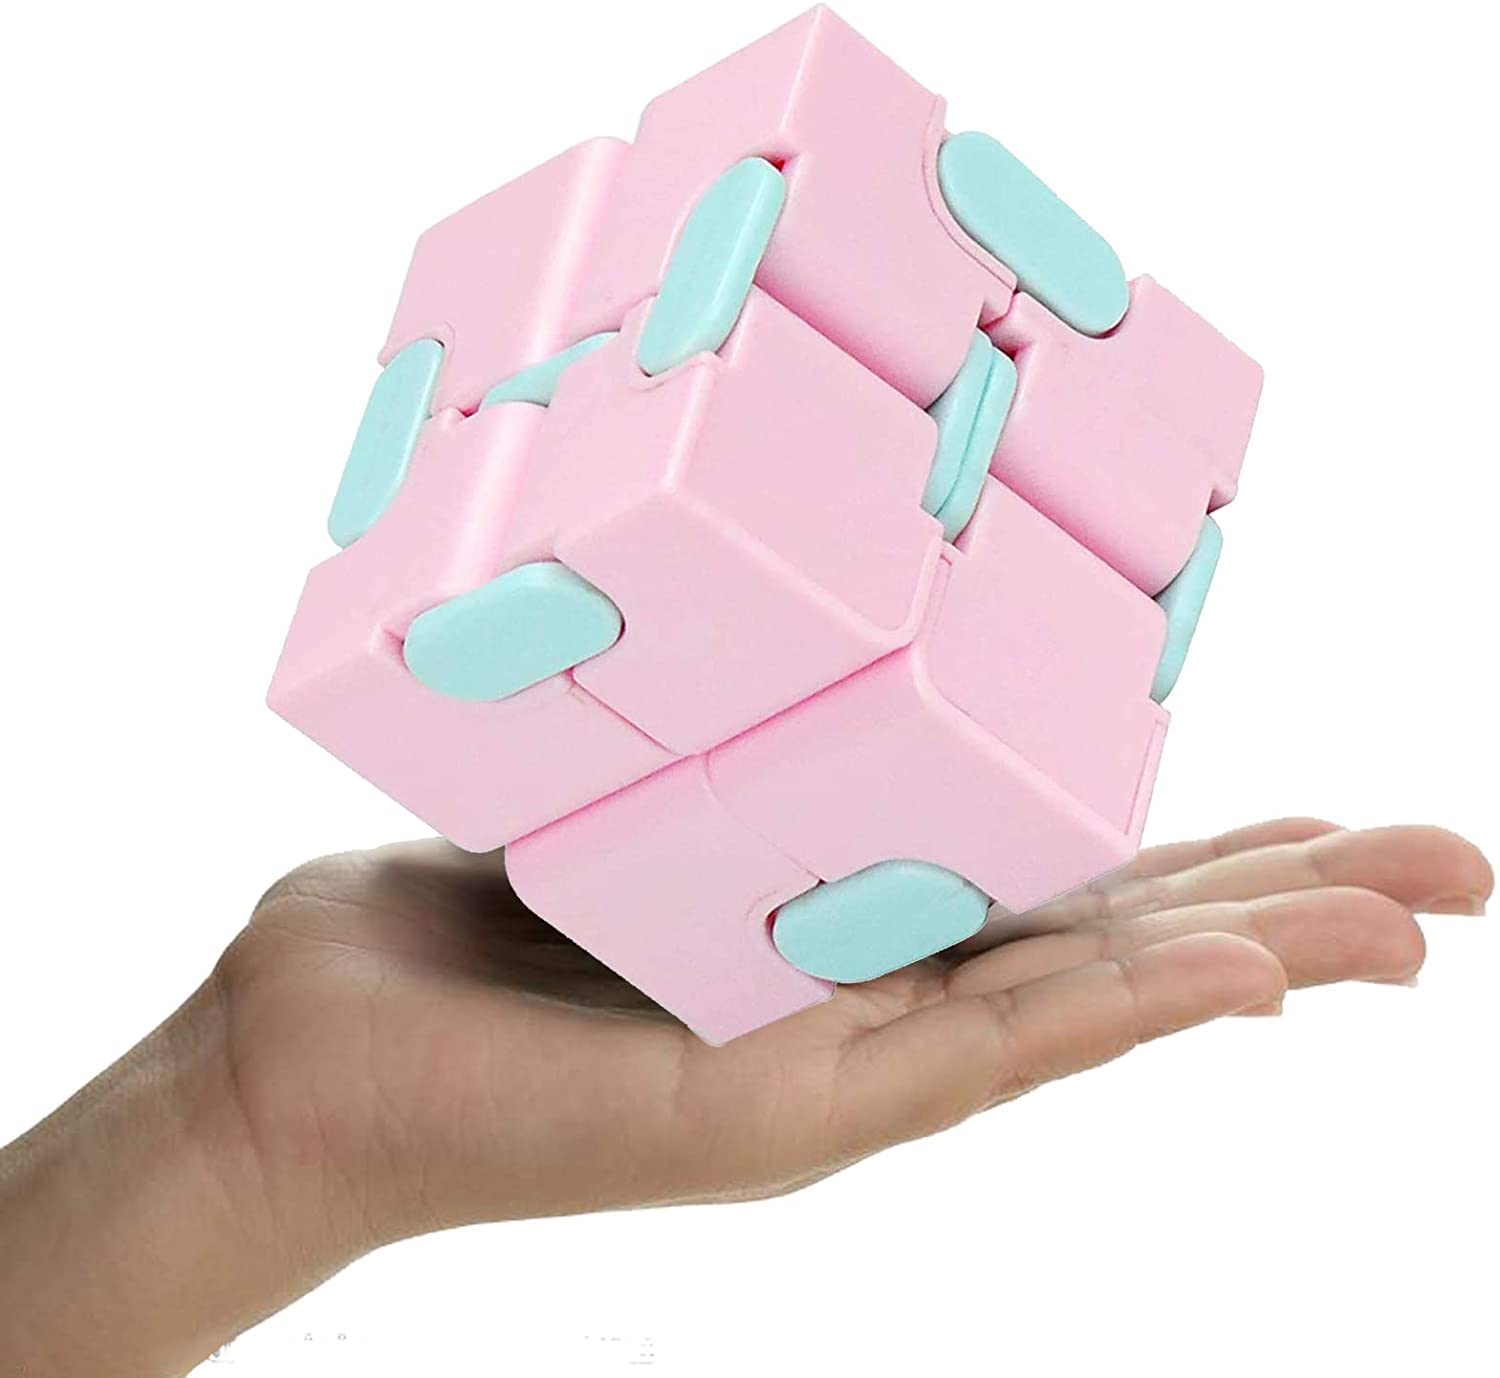 snow keychain Infinity Cube Fidget Toy, Sensory Stress Relief Decompression Fidget Finger Toys, Sensory Tool Magic Cube for Kids and Adults Infinite Cube for Kids Adults Office 1 pcs Pink